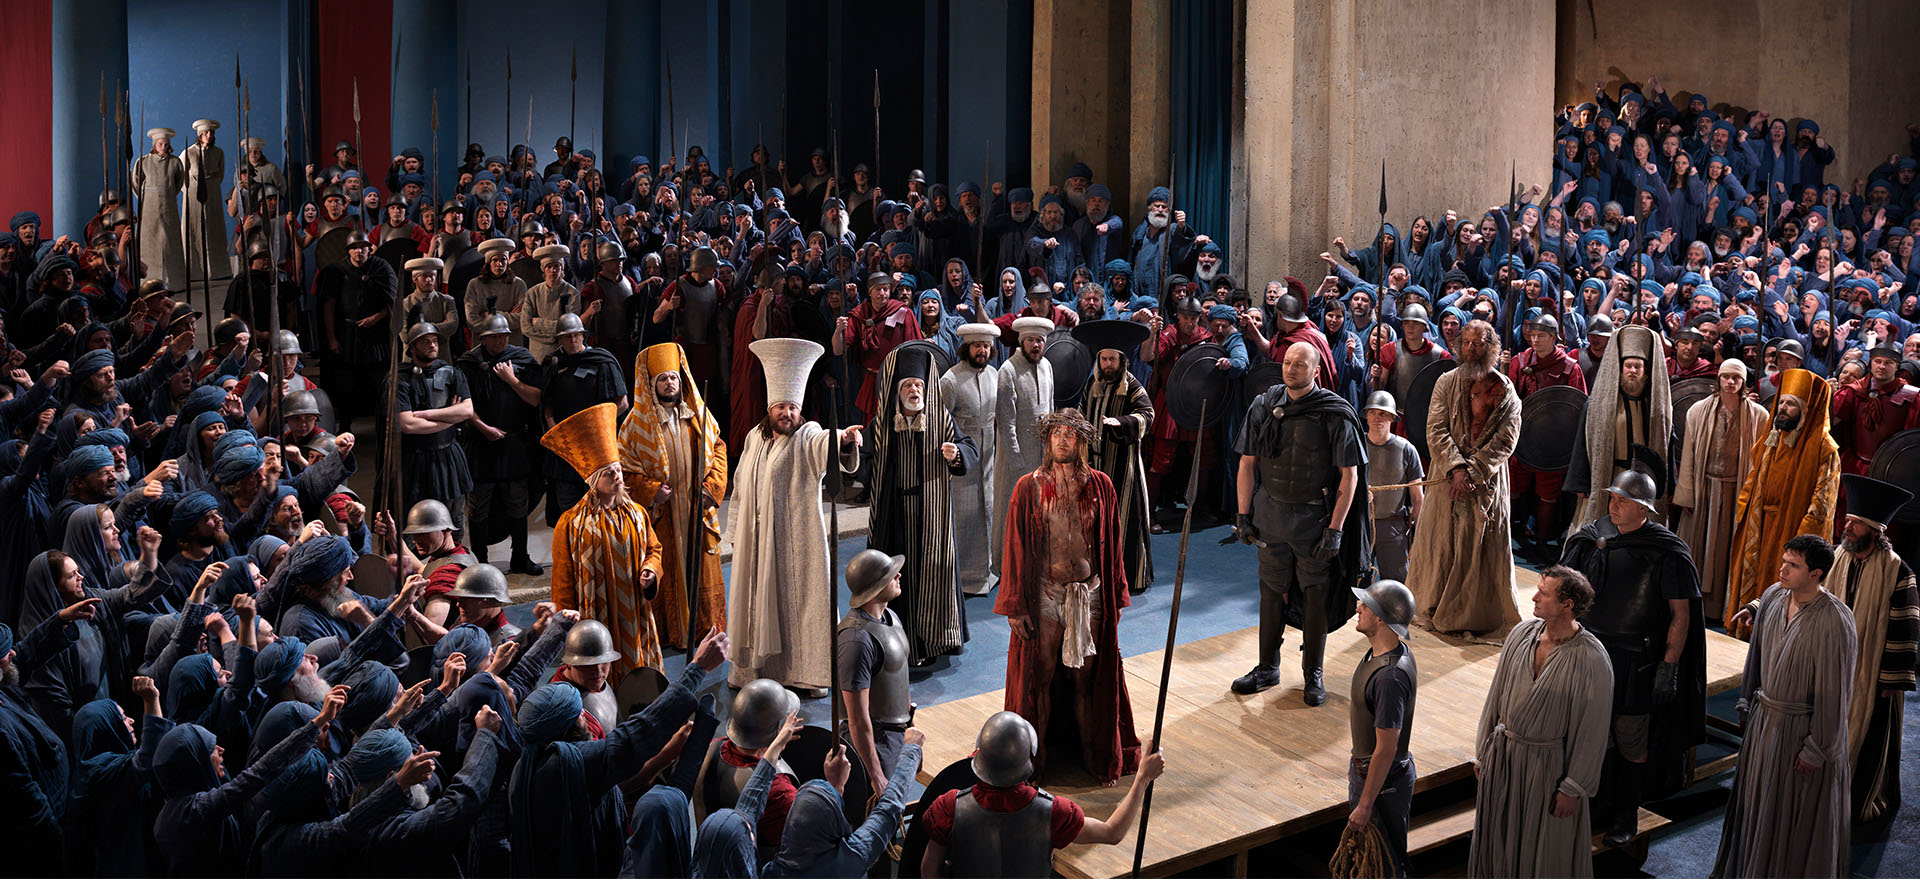 Still from The Oberammergau Passion Play | Oberammergau, Germany